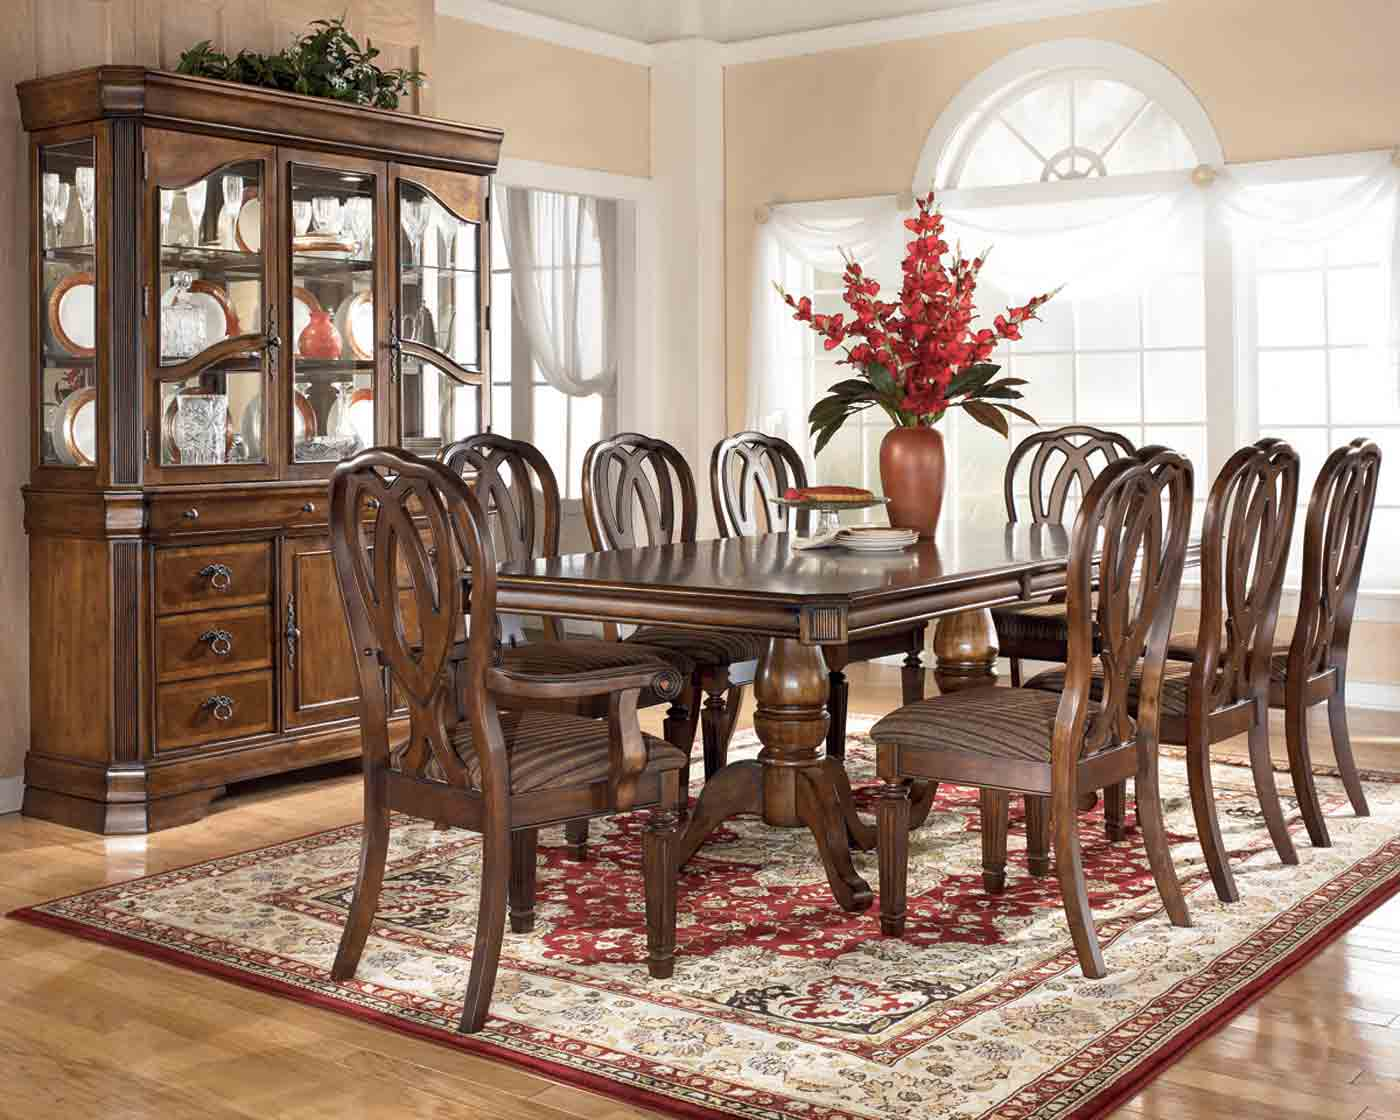 amusing traditional dining room ideas roomjpg full version